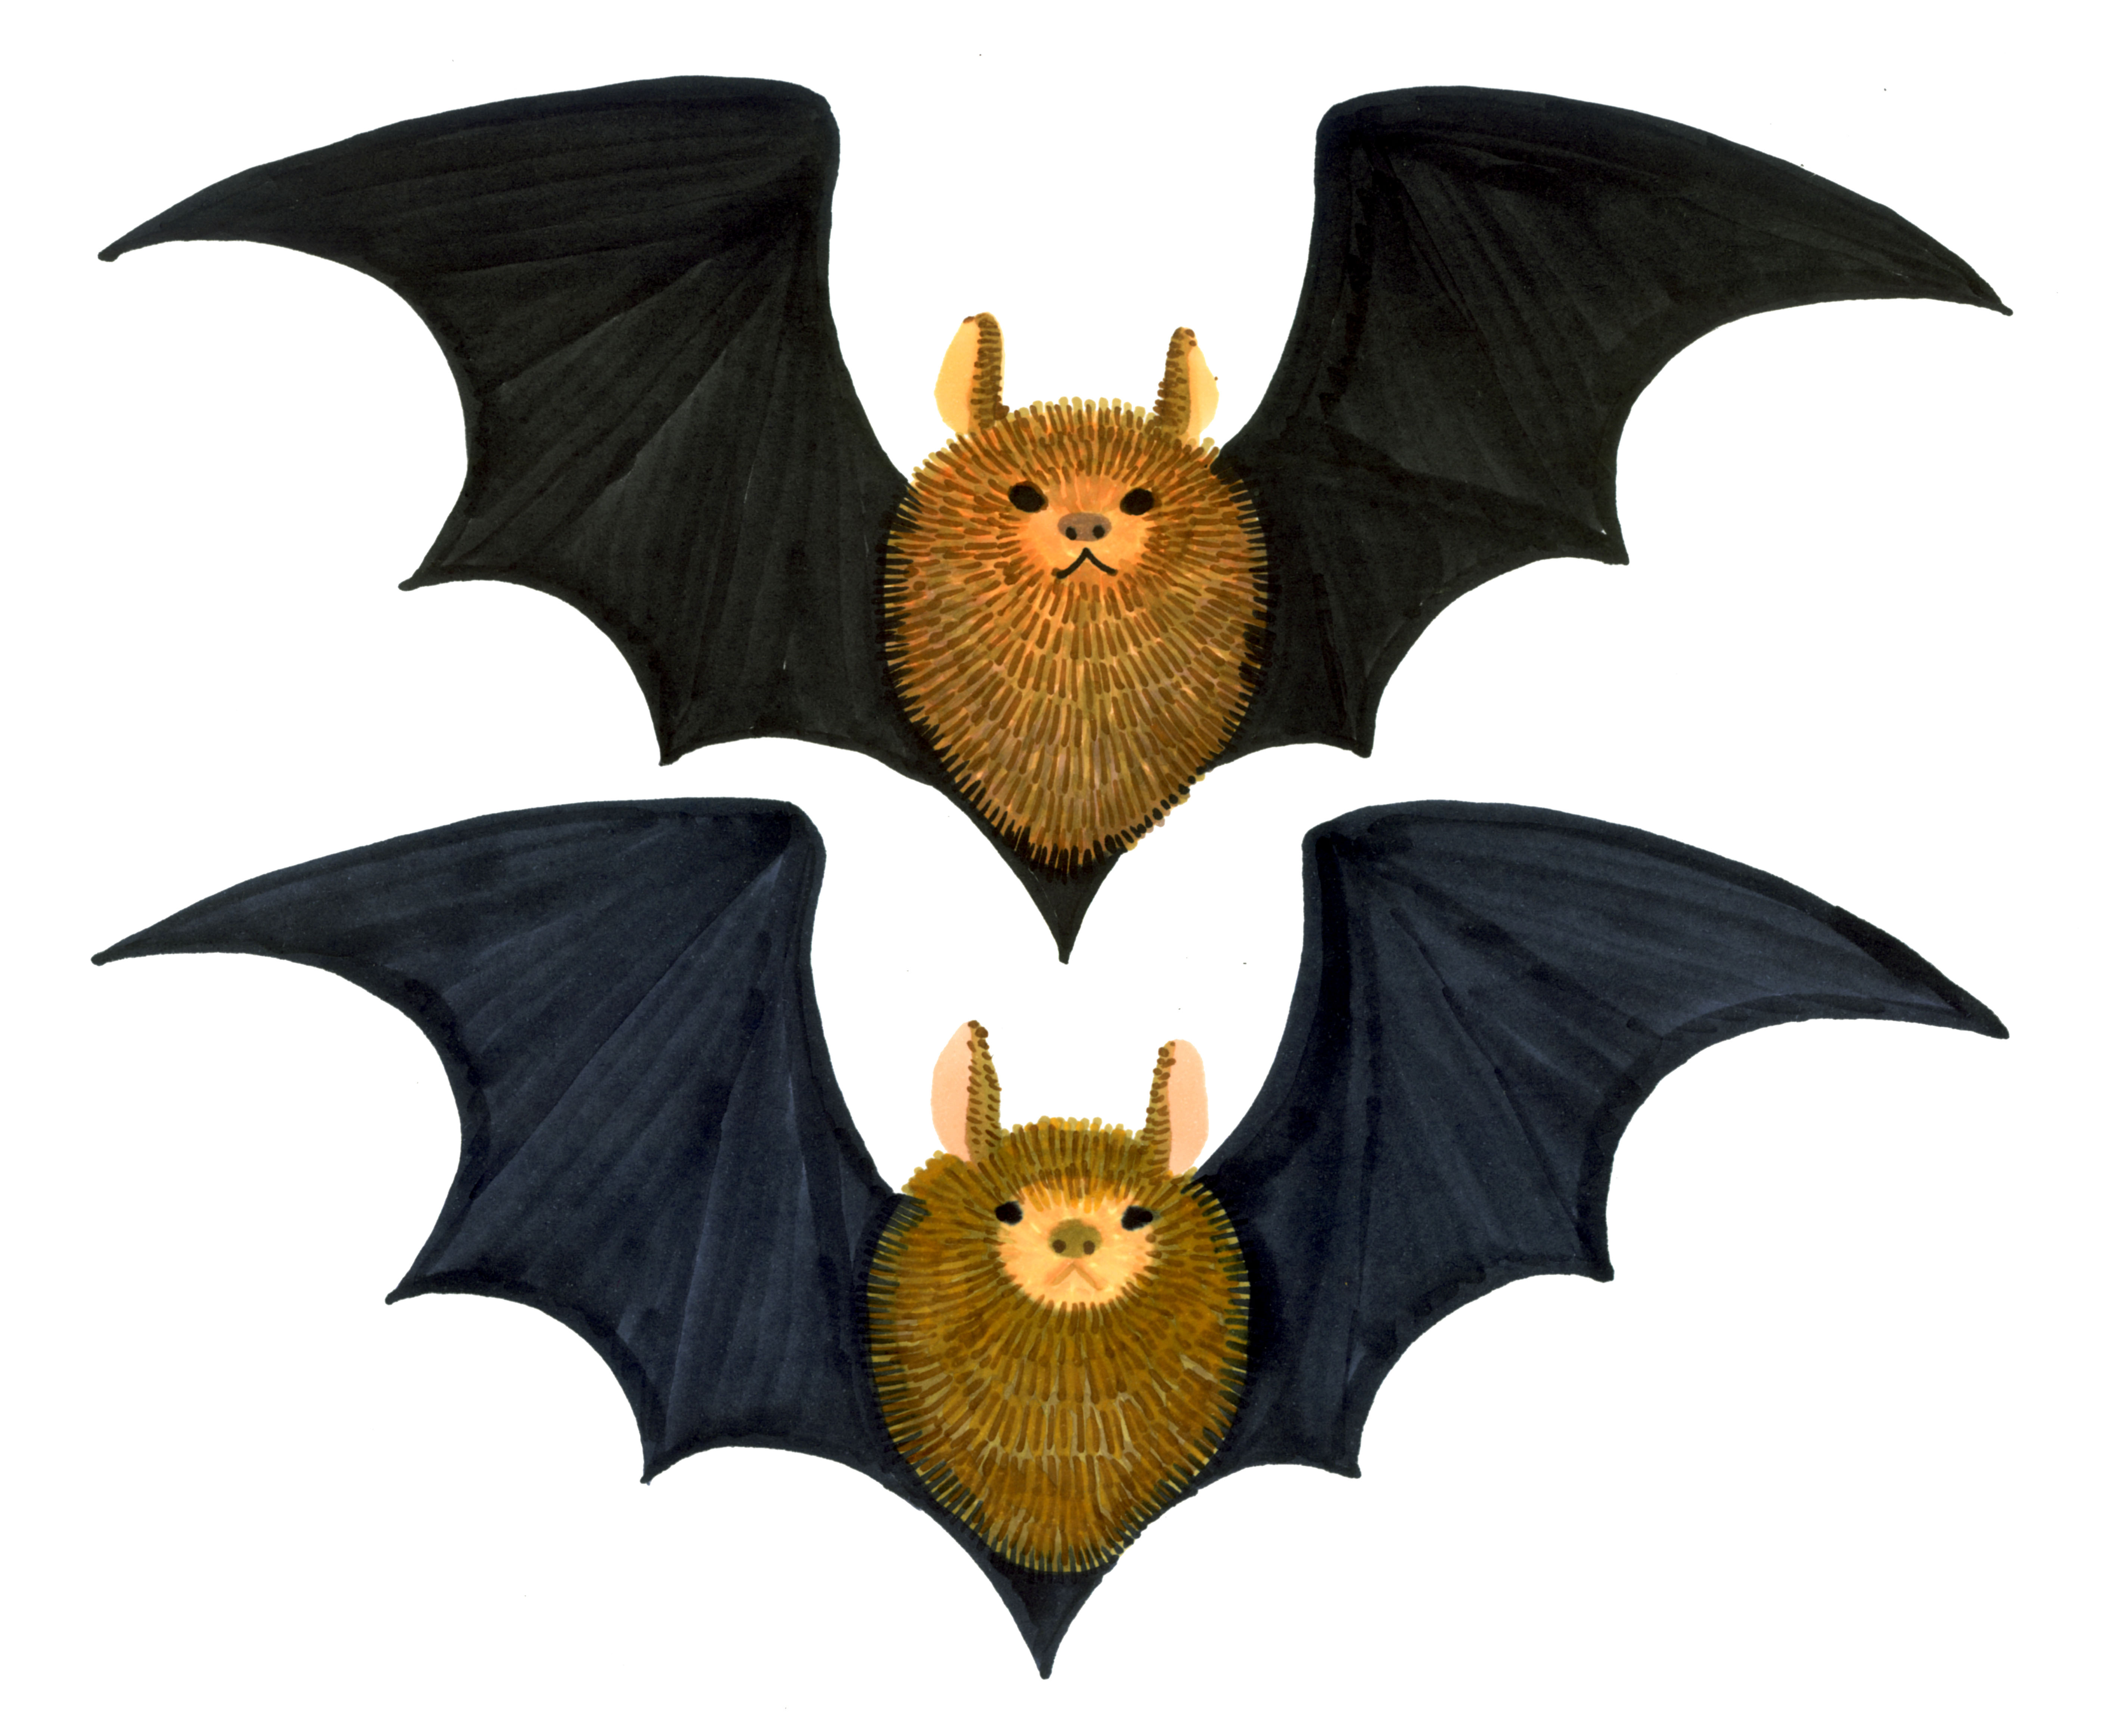 Two Bats